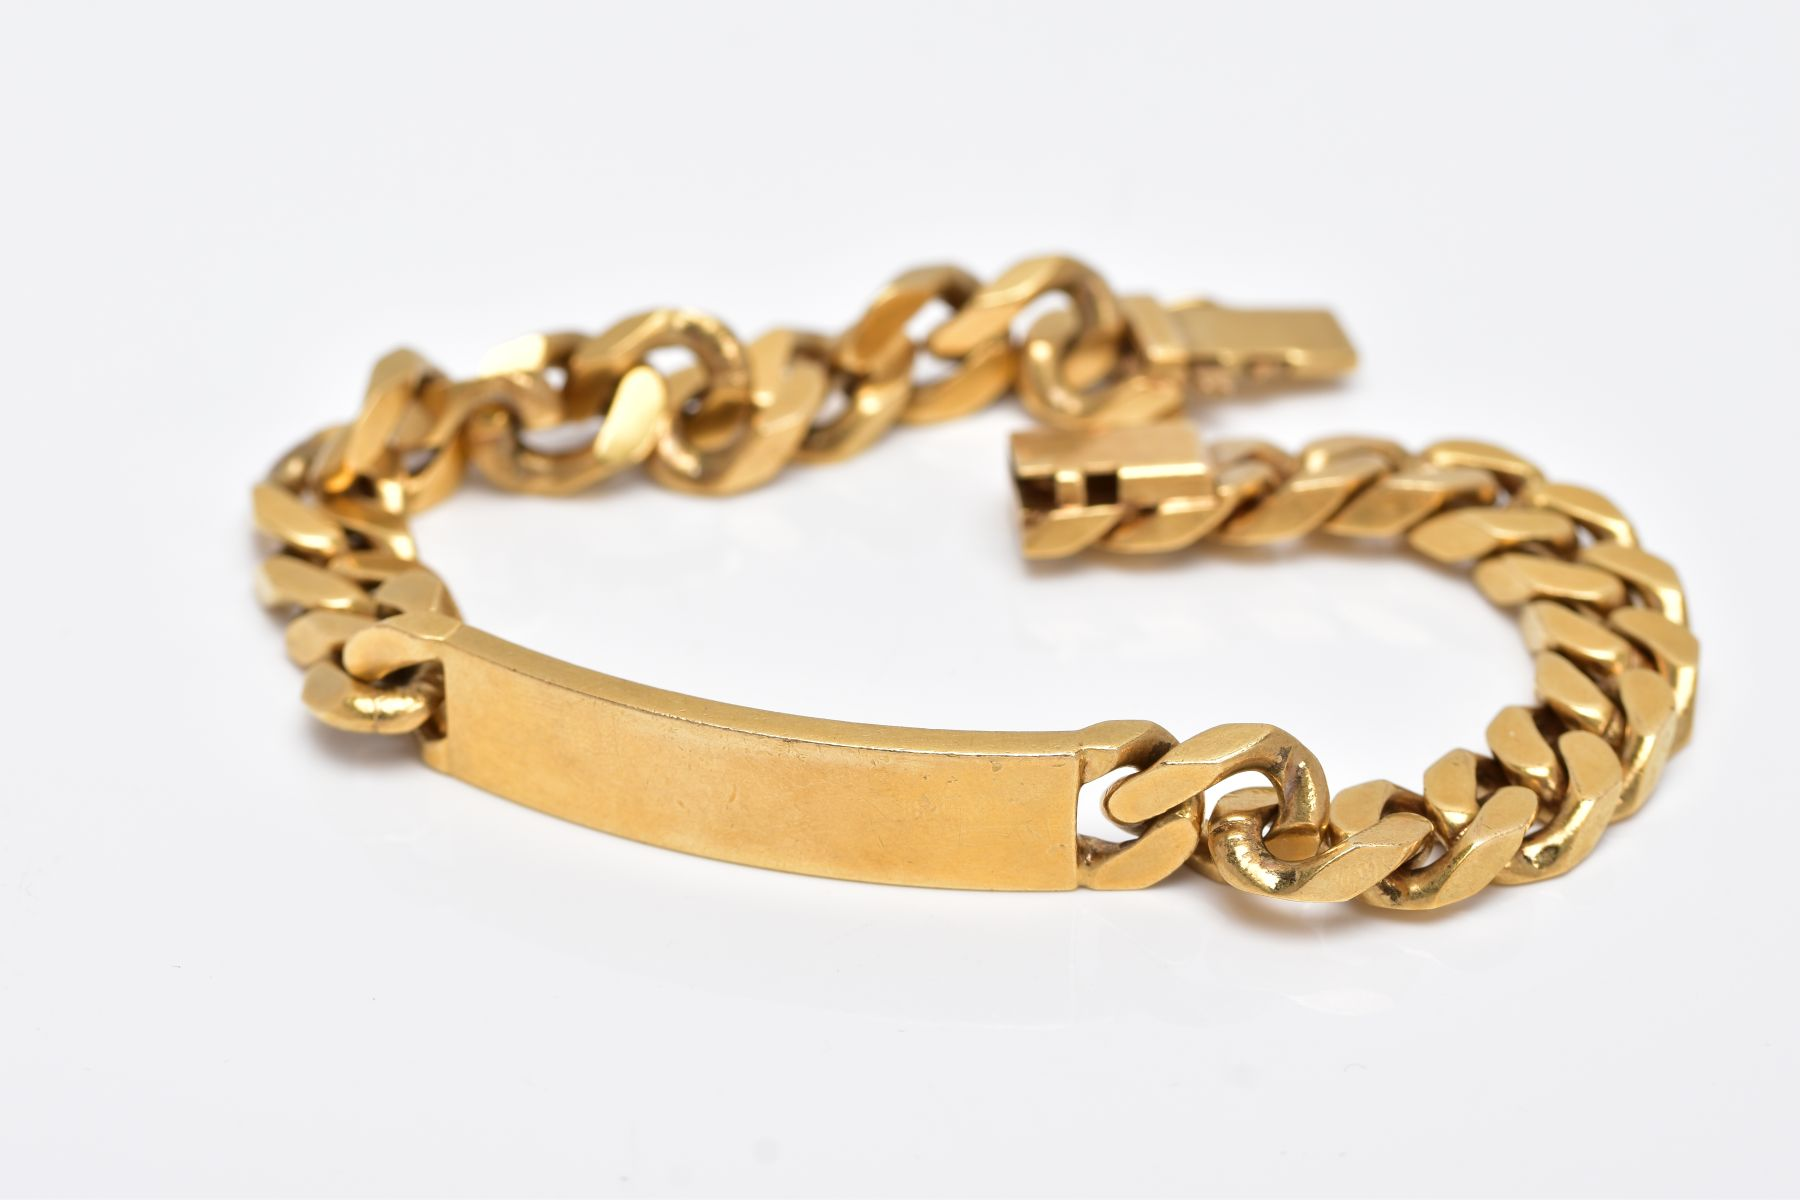 A LATE 20TH CENTURY GENTS HEAVY GAUGE CURB LINK IDENTITY BRACELET, measuring approximately 230mm